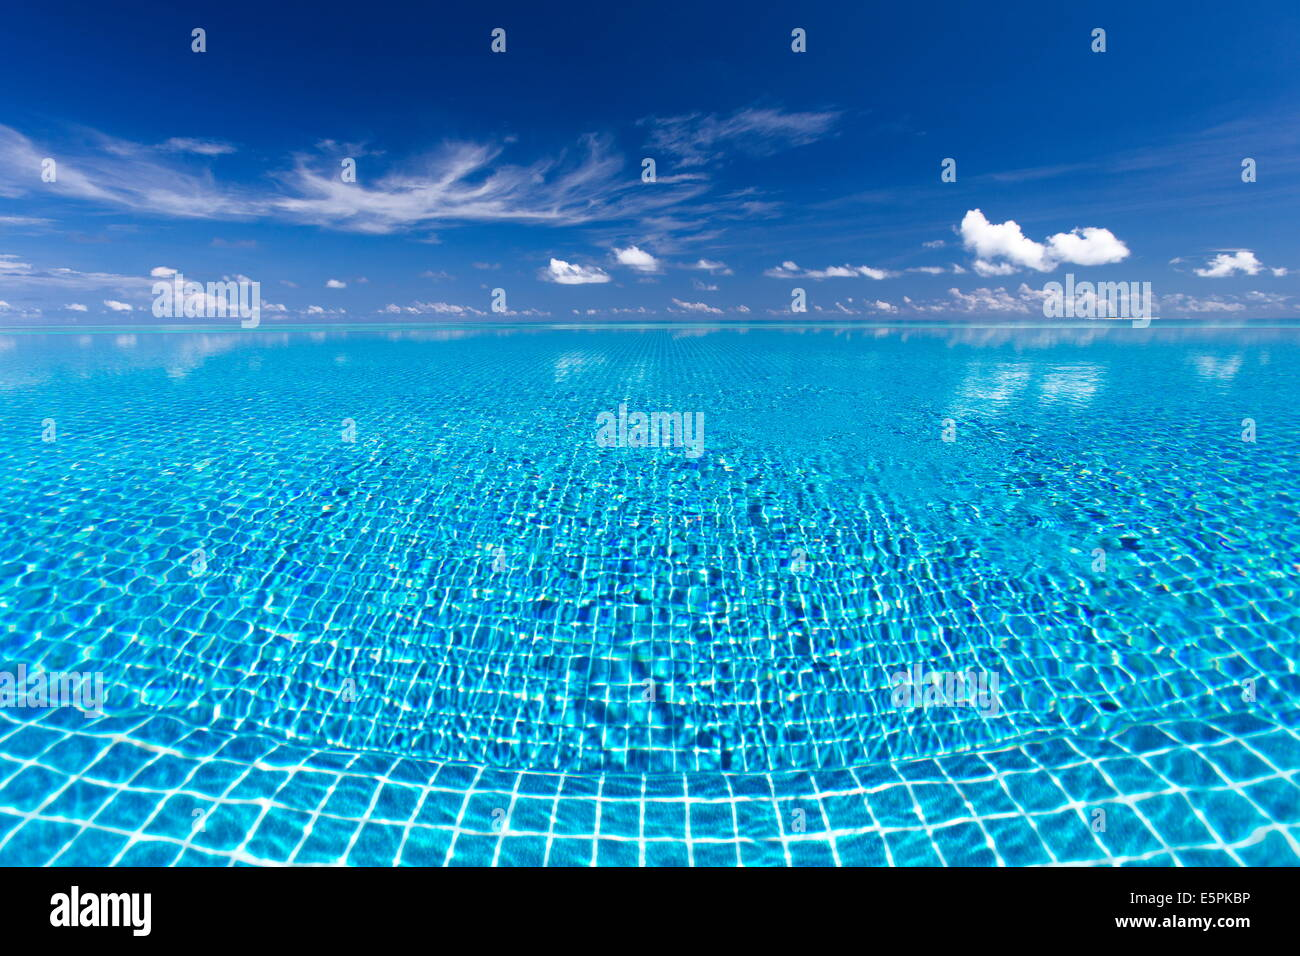 Piscine à débordement, Maldives, océan Indien, Asie Photo Stock